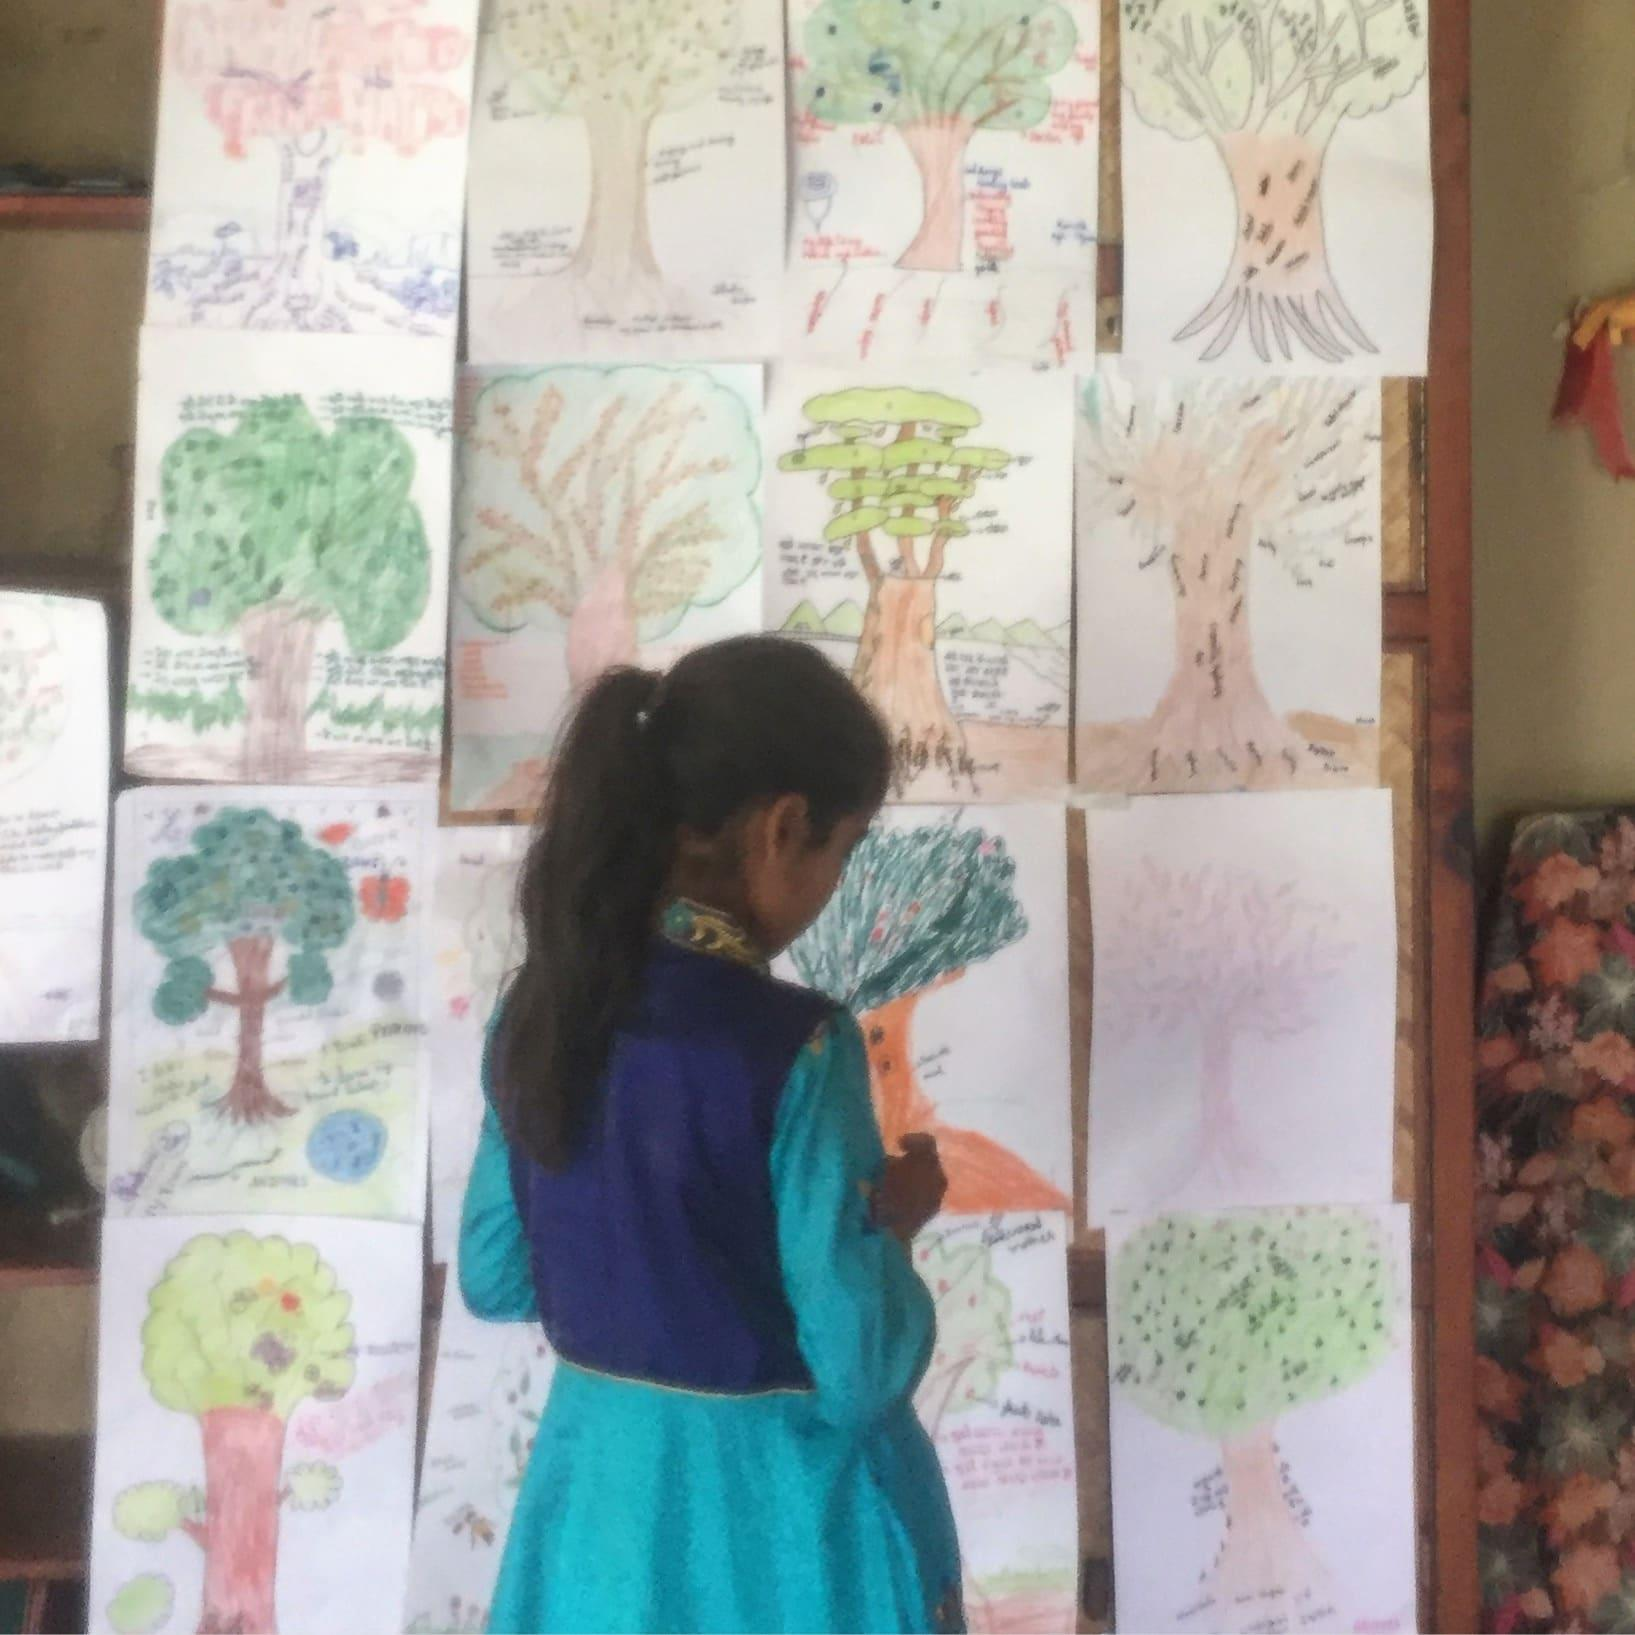 The Tree that Jaya Grew: Using Tree of Life in the Rural Indian Himalayas